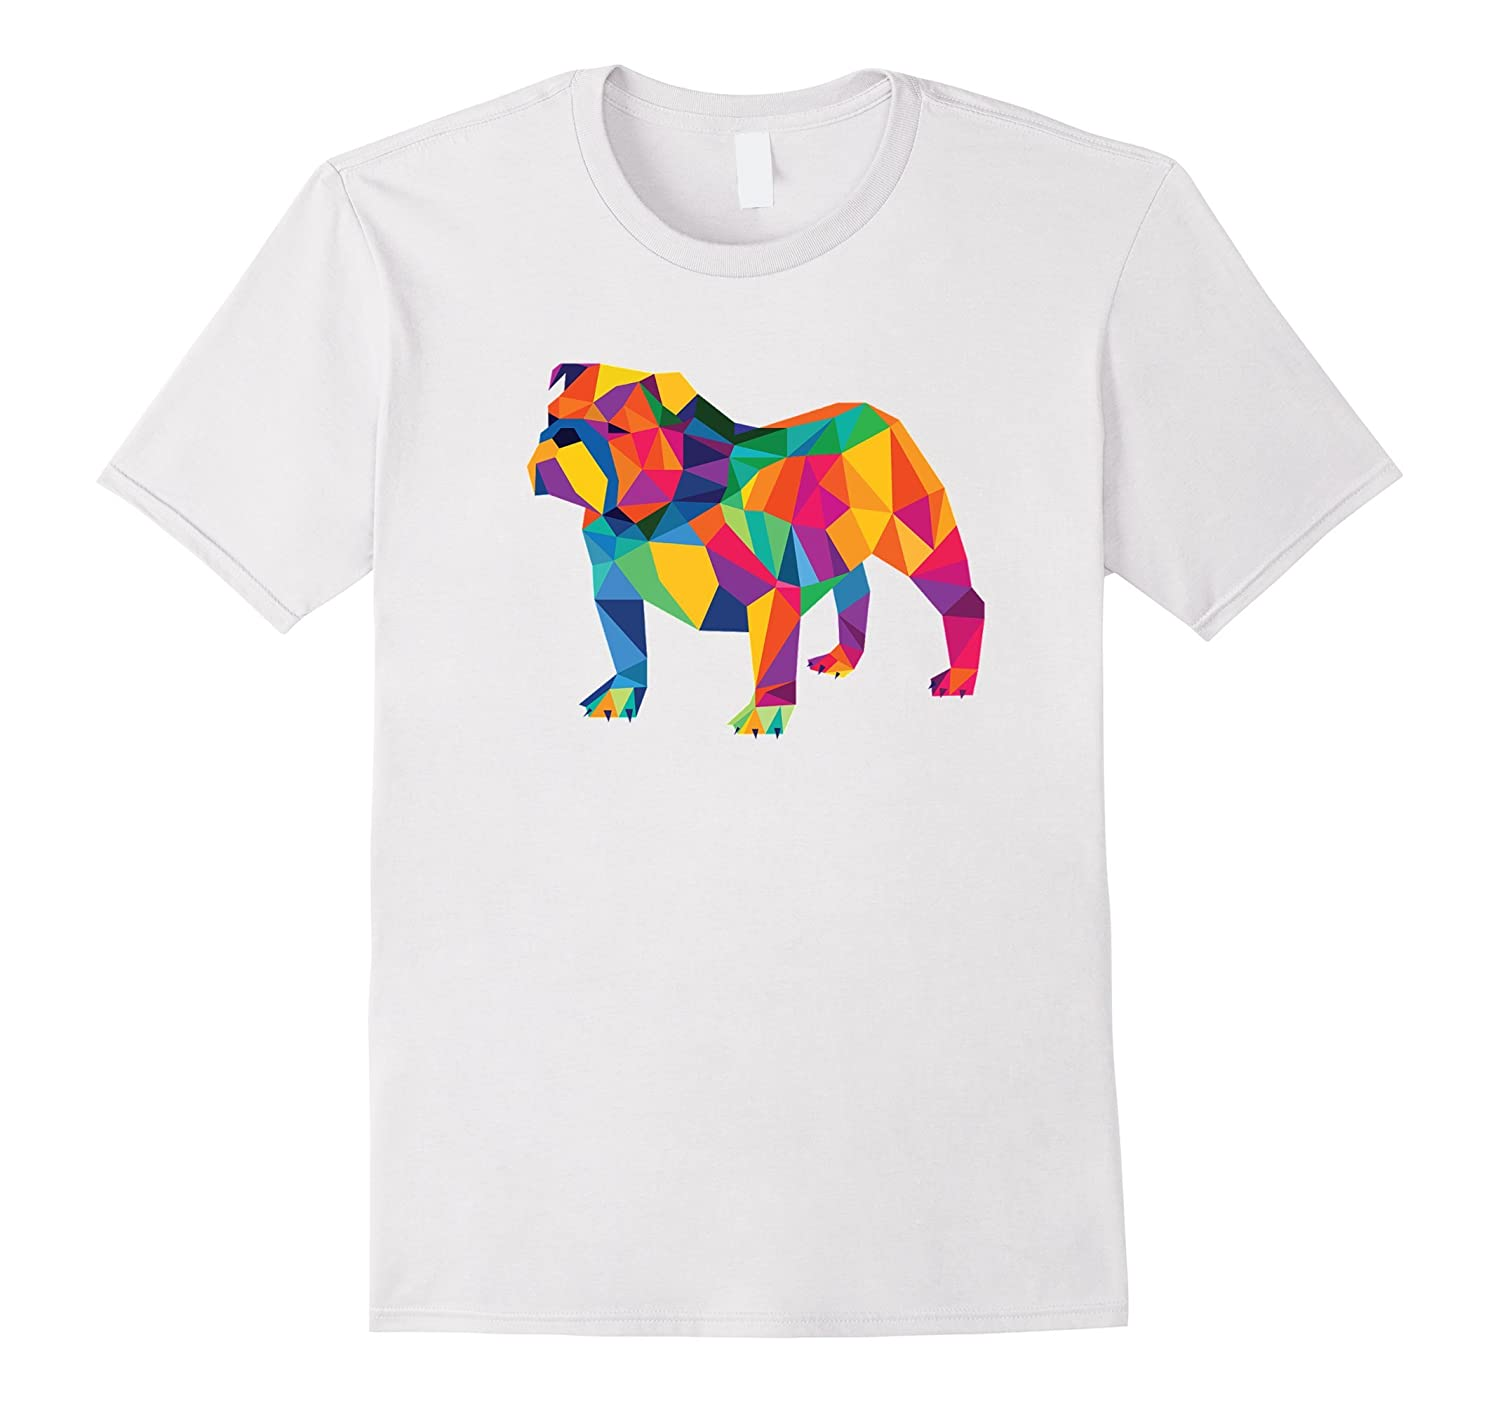 70a749de7 English Bulldog Geo Fractal T-Shirt-CL – Colamaga